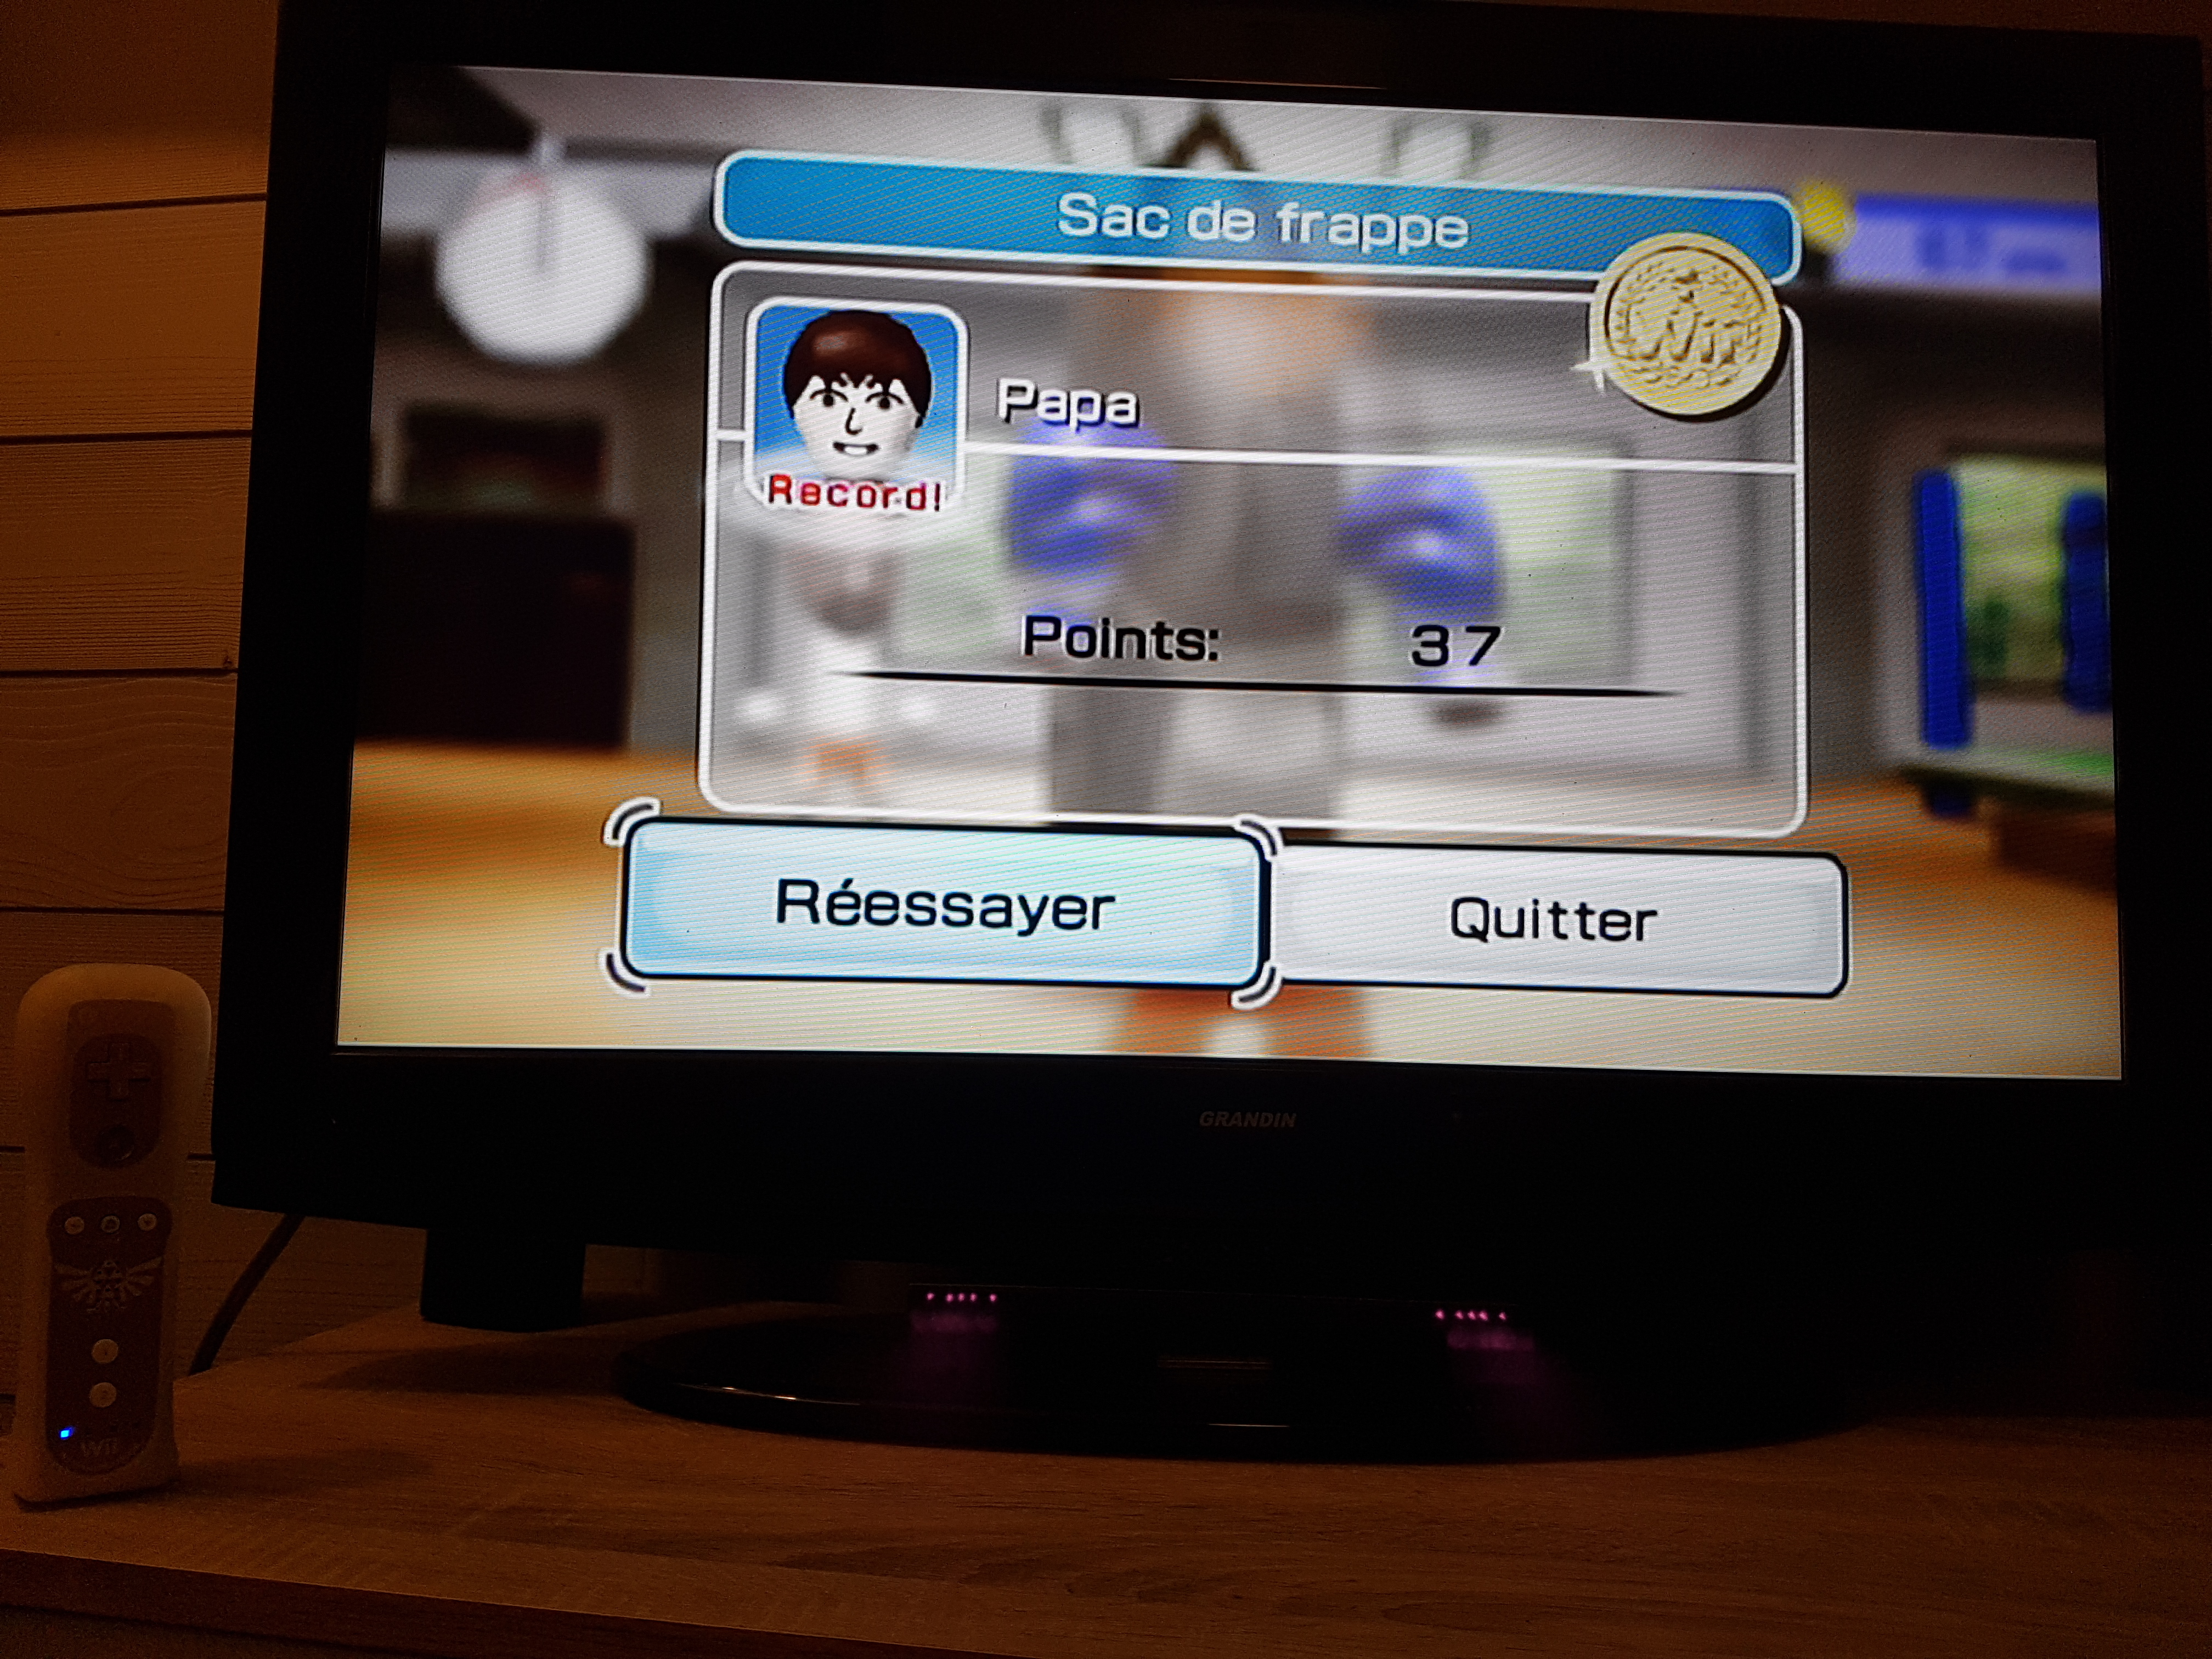 EddieNiceguy: Wii Sports: Boxing [Working the Bag] (Wii) 37 points on 2018-02-02 15:42:56